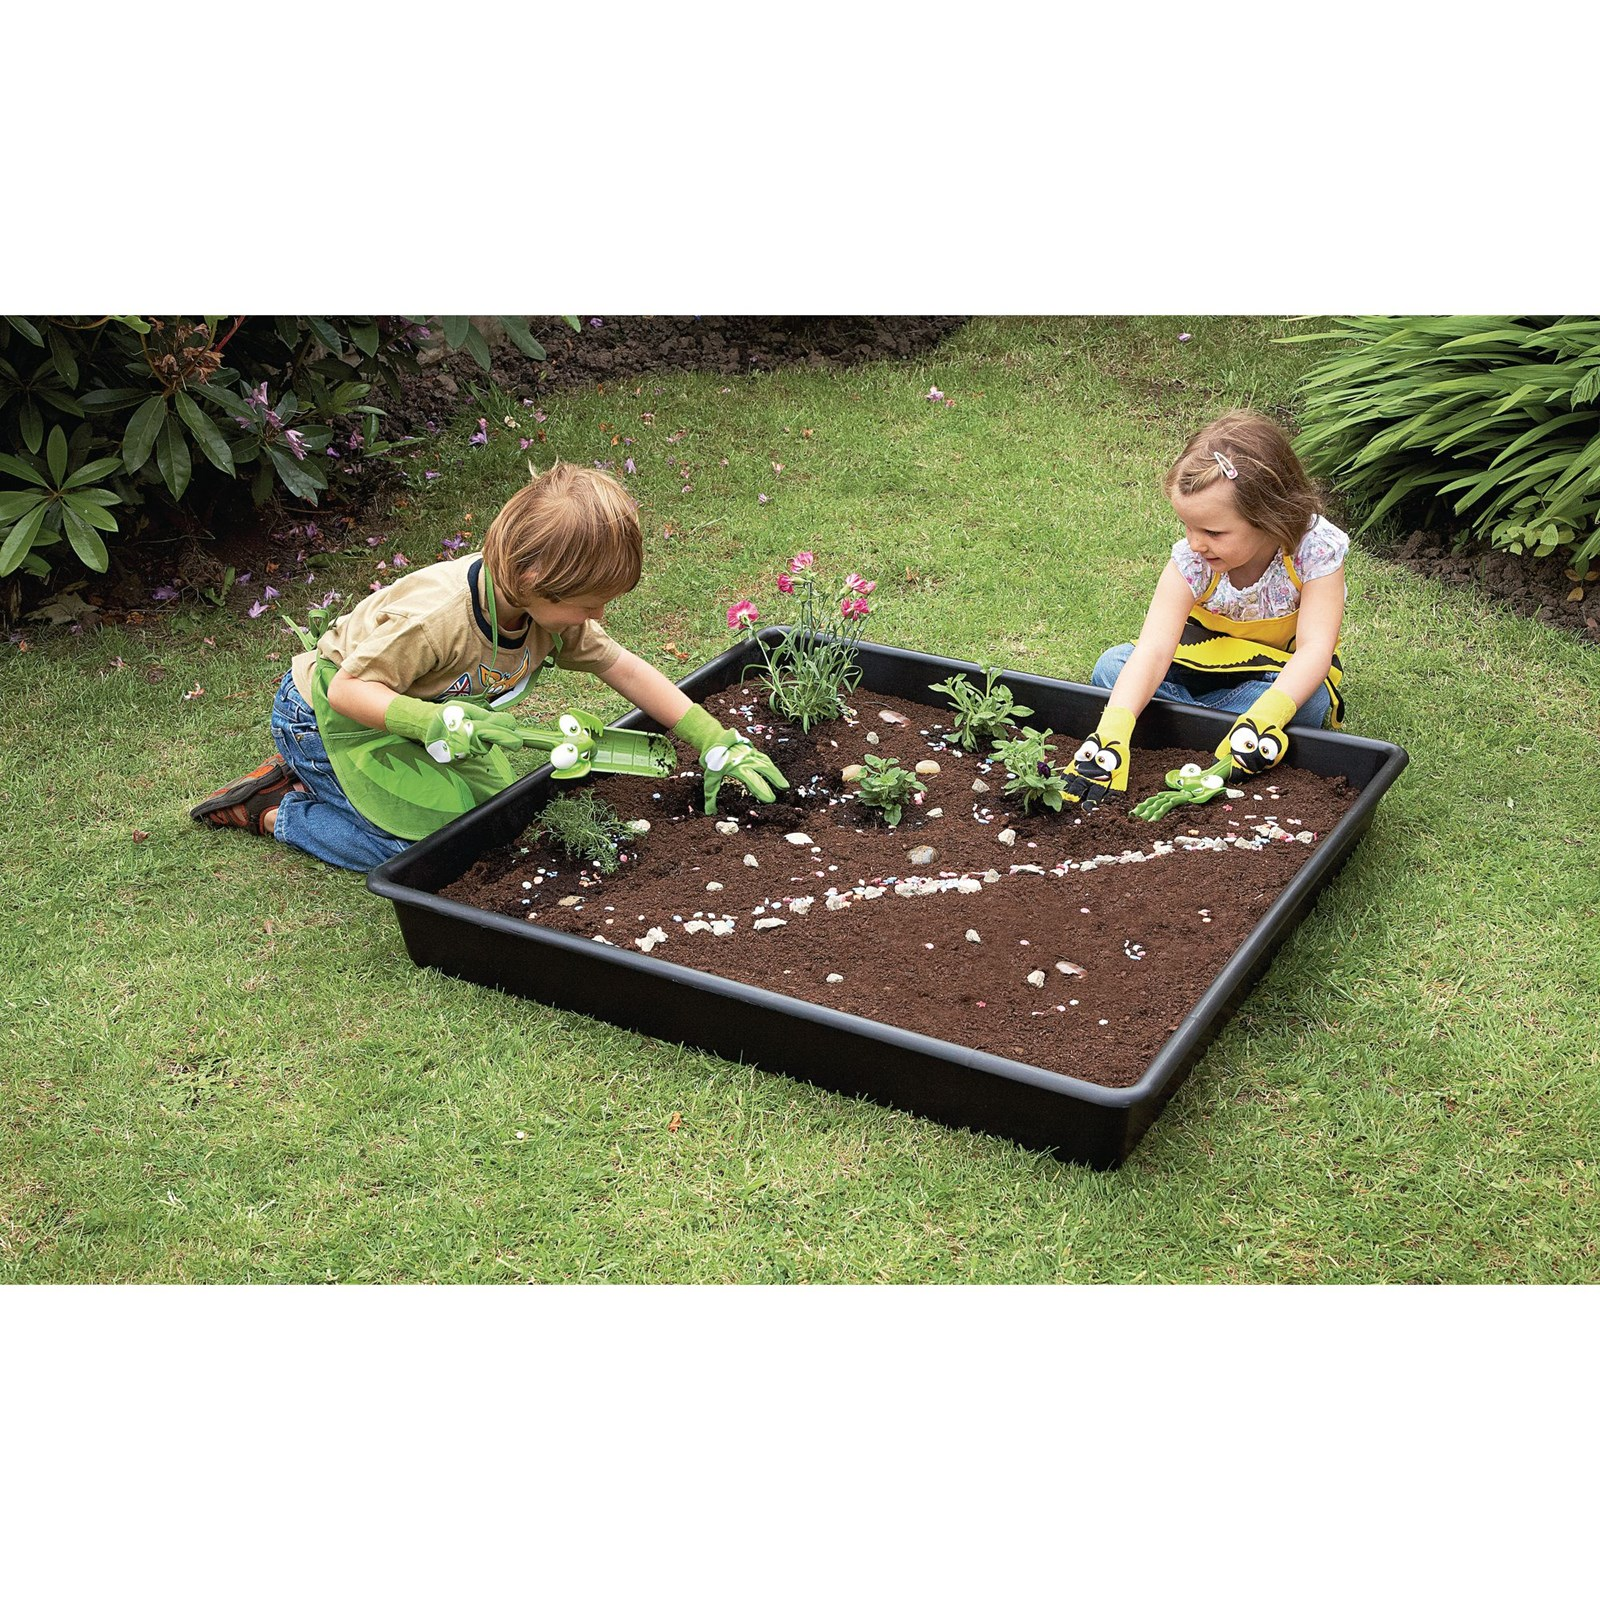 Giant Tray Offer